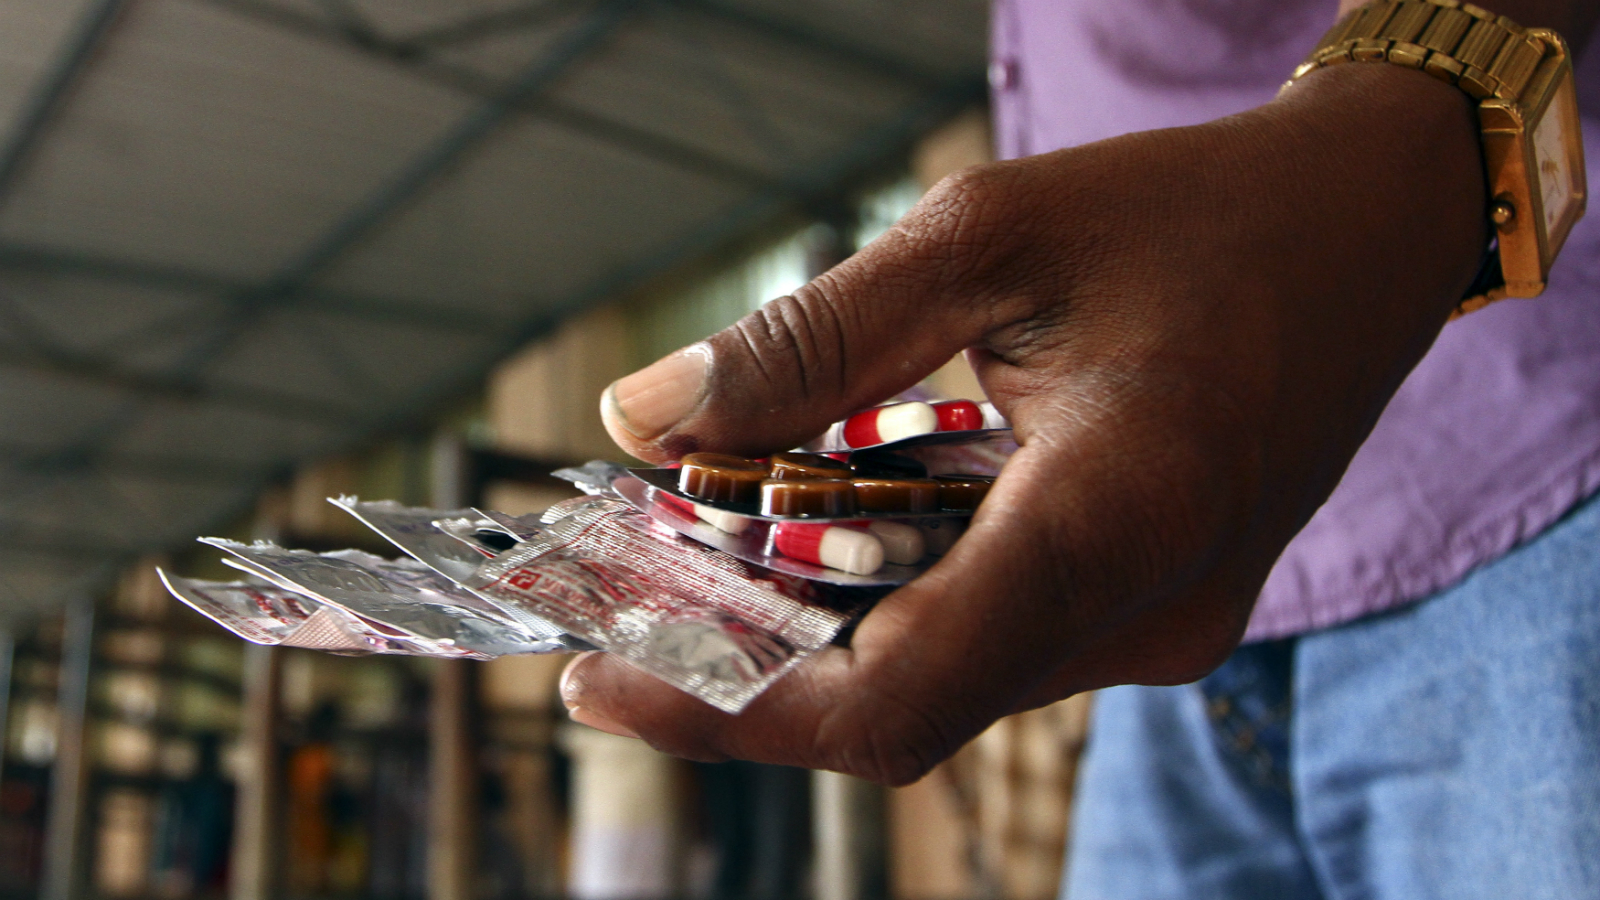 A patient holds free medicine provided by the government at Rajiv Gandhi Government General Hospital (RGGGH) in Chennai July 12, 2012. Chennai is the capital of Tamil Nadu, one of two Indian states offering free medicine for all. The state provides a glimpse of the hurdles India faces as it embarks on a programme to extend free drug coverage nationwide. Picture taken July 12, 2012. To match Analysis INDIA-DRUGS/